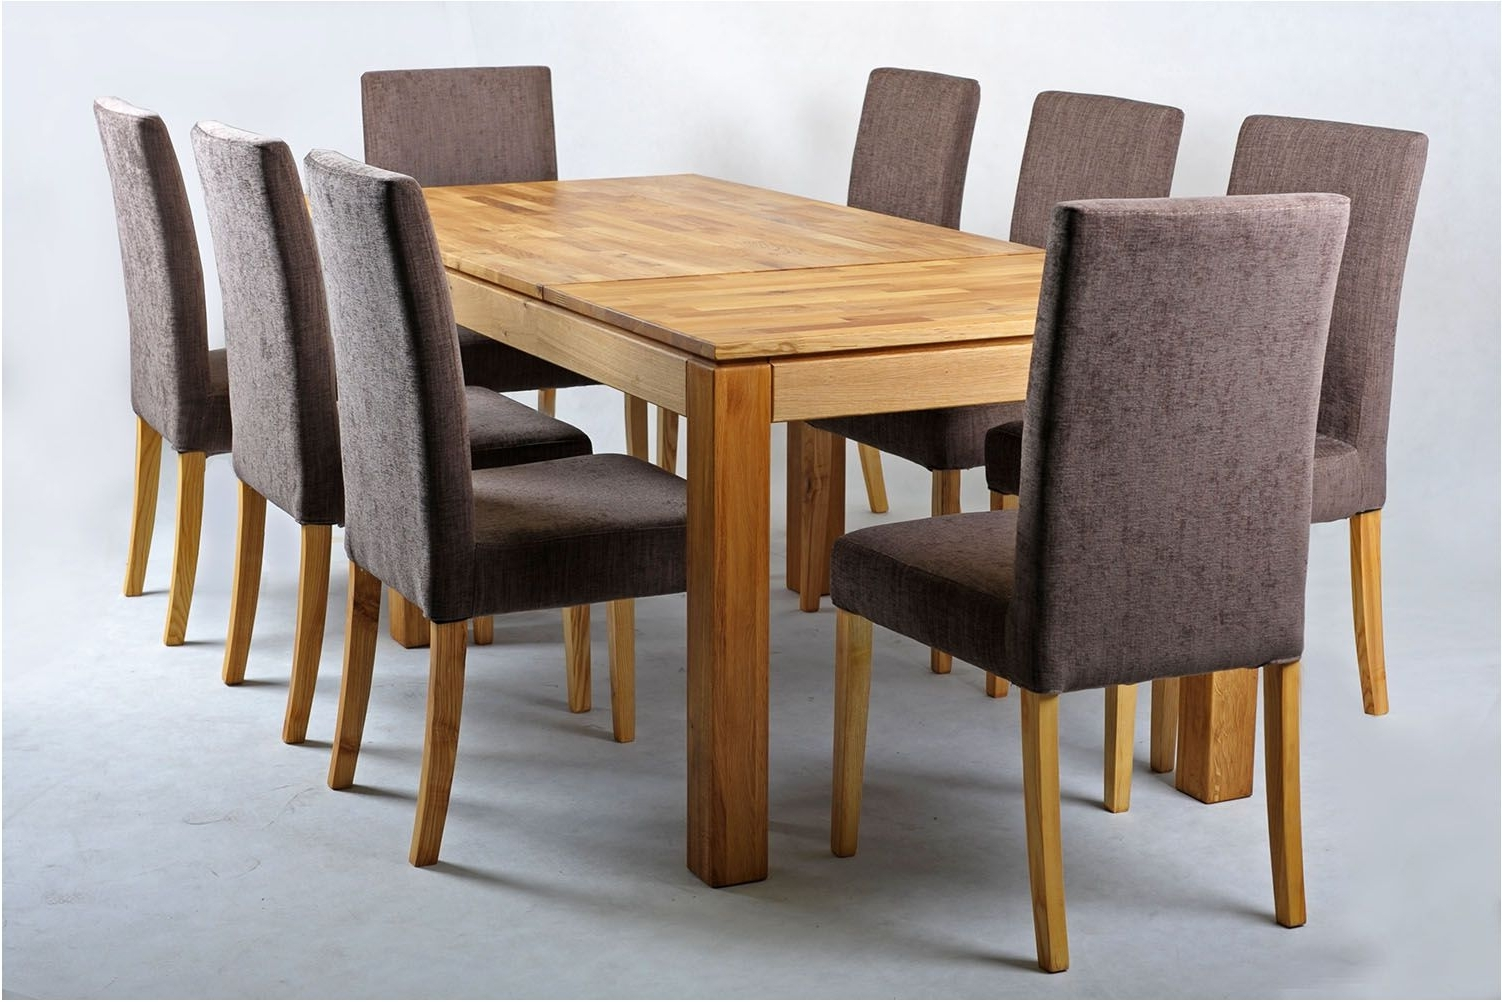 Most Current Terrific Solid Oak Extending Dining Table And Chairs Set Home Goods Regarding Extending Dining Table Sets (View 13 of 25)